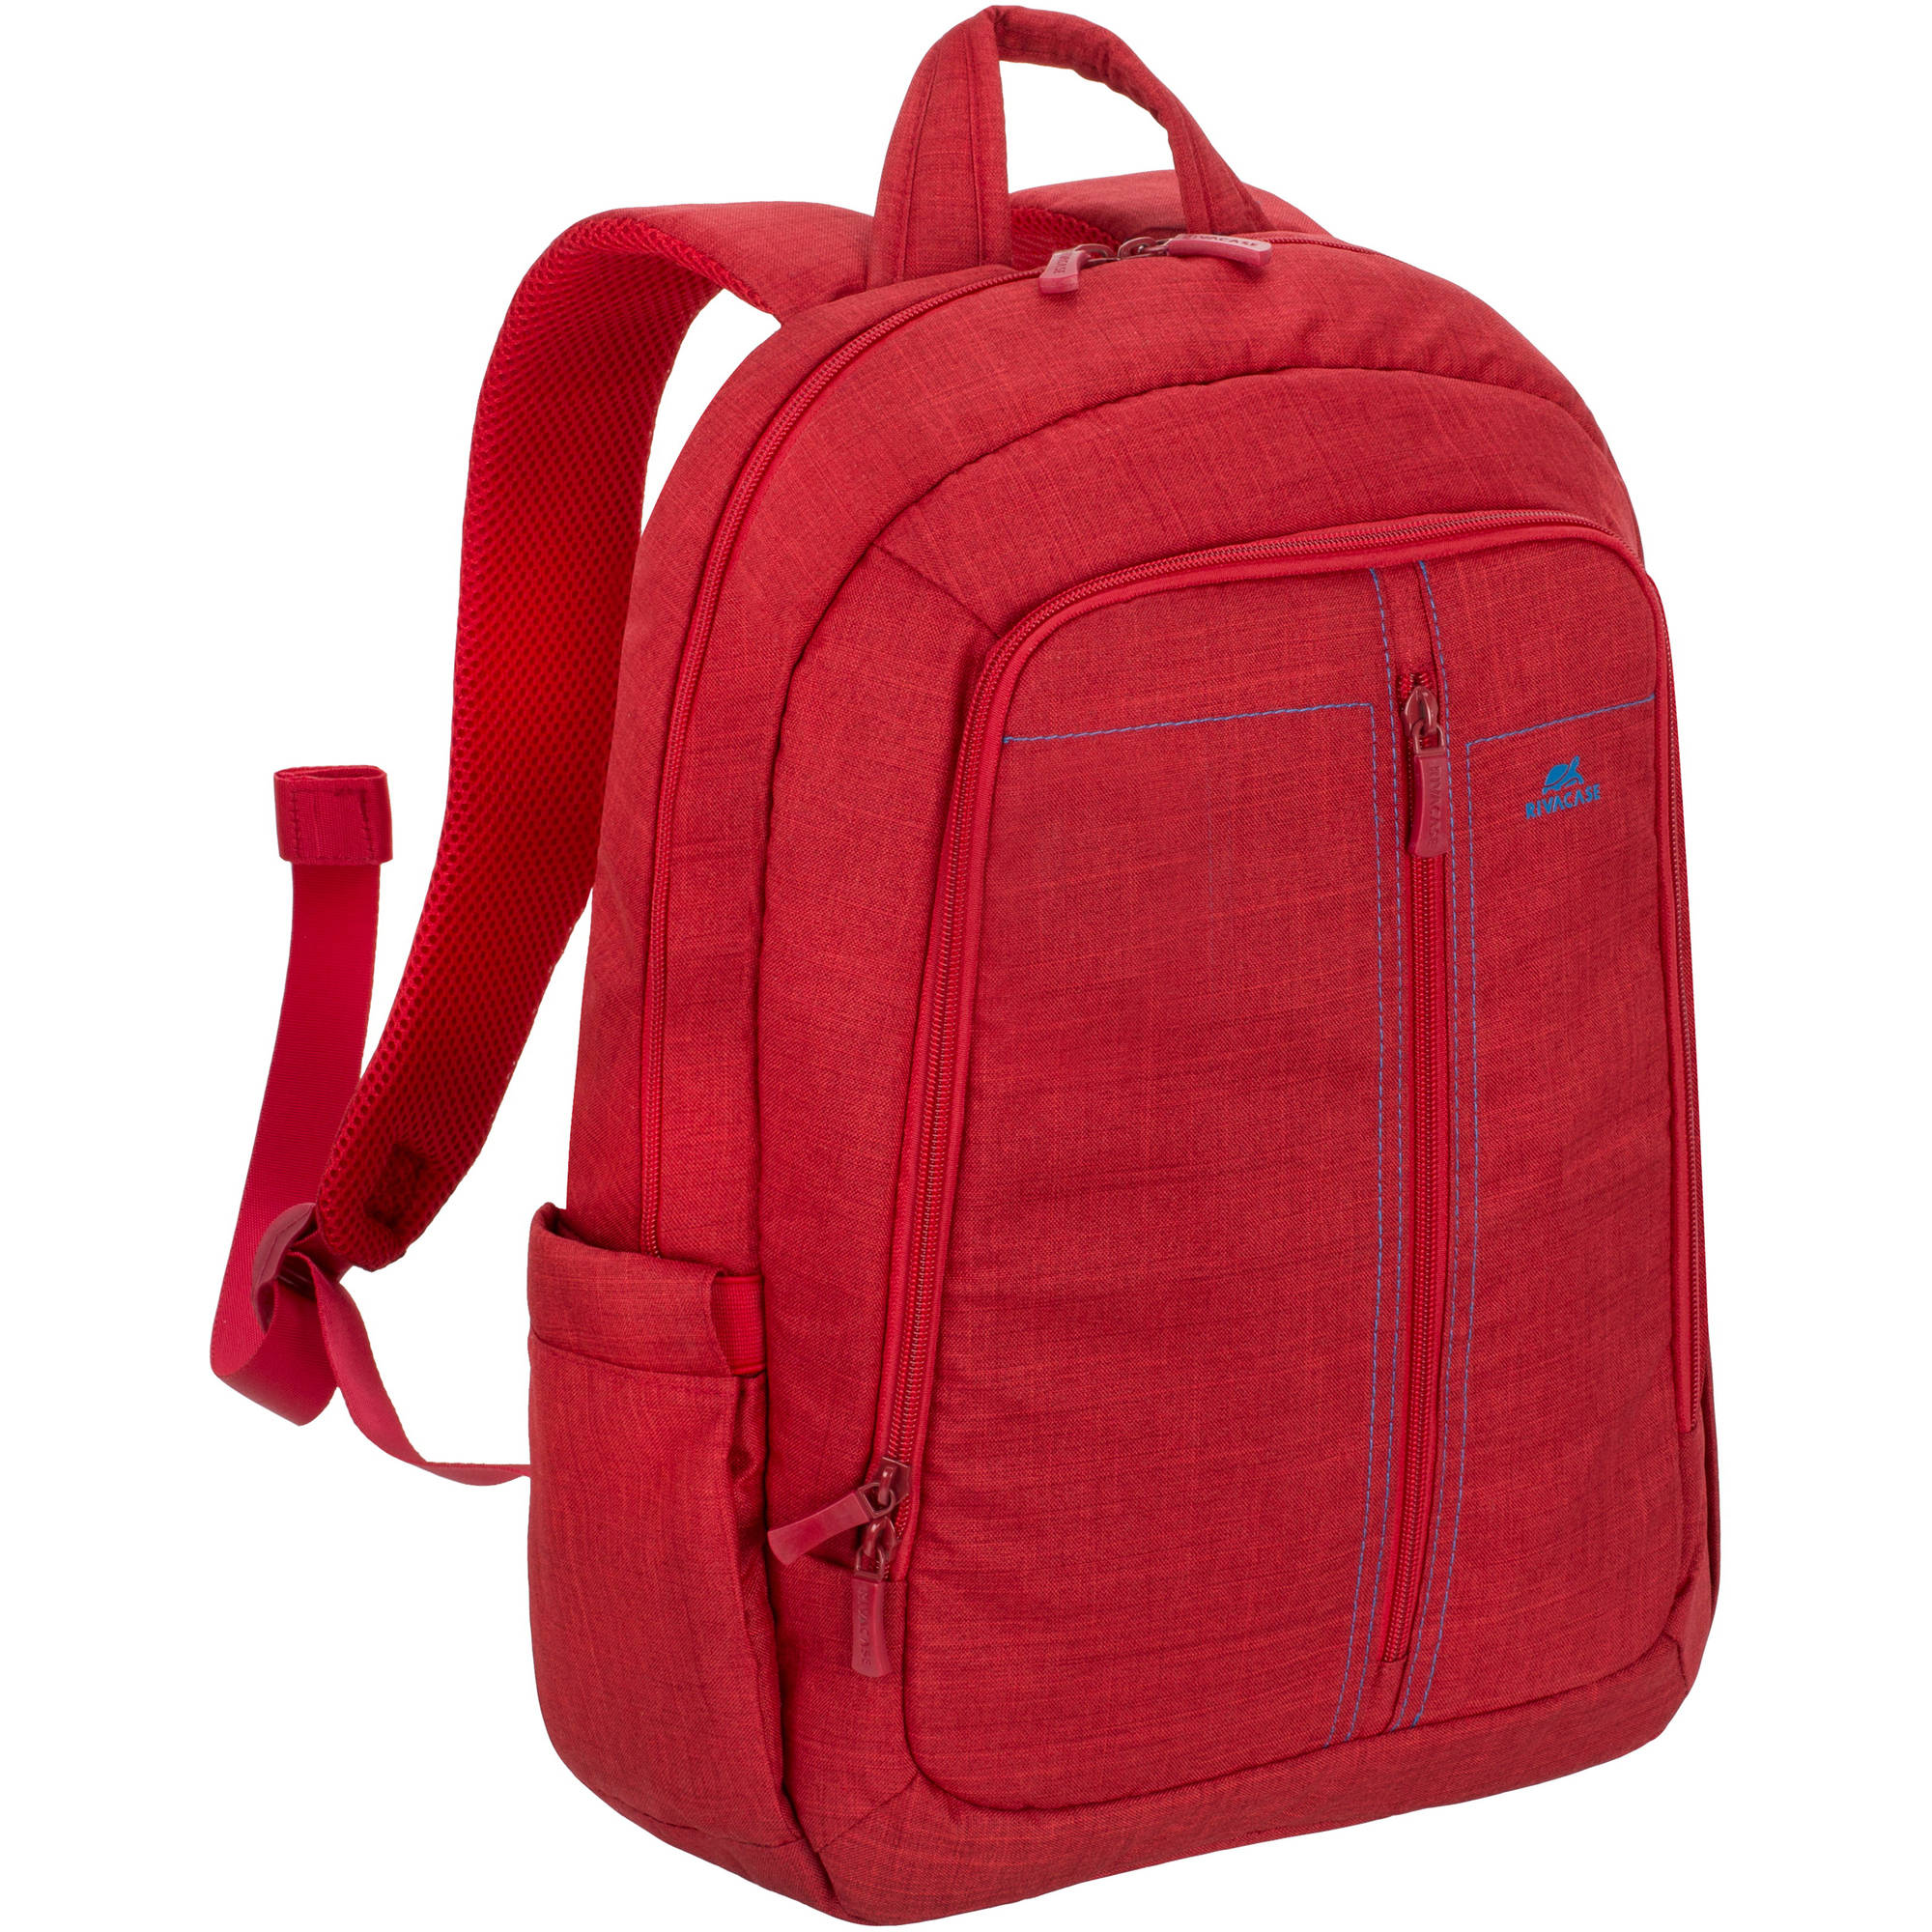 "RIVACASE 15.6"" Laptop Backpack 7560, Red"